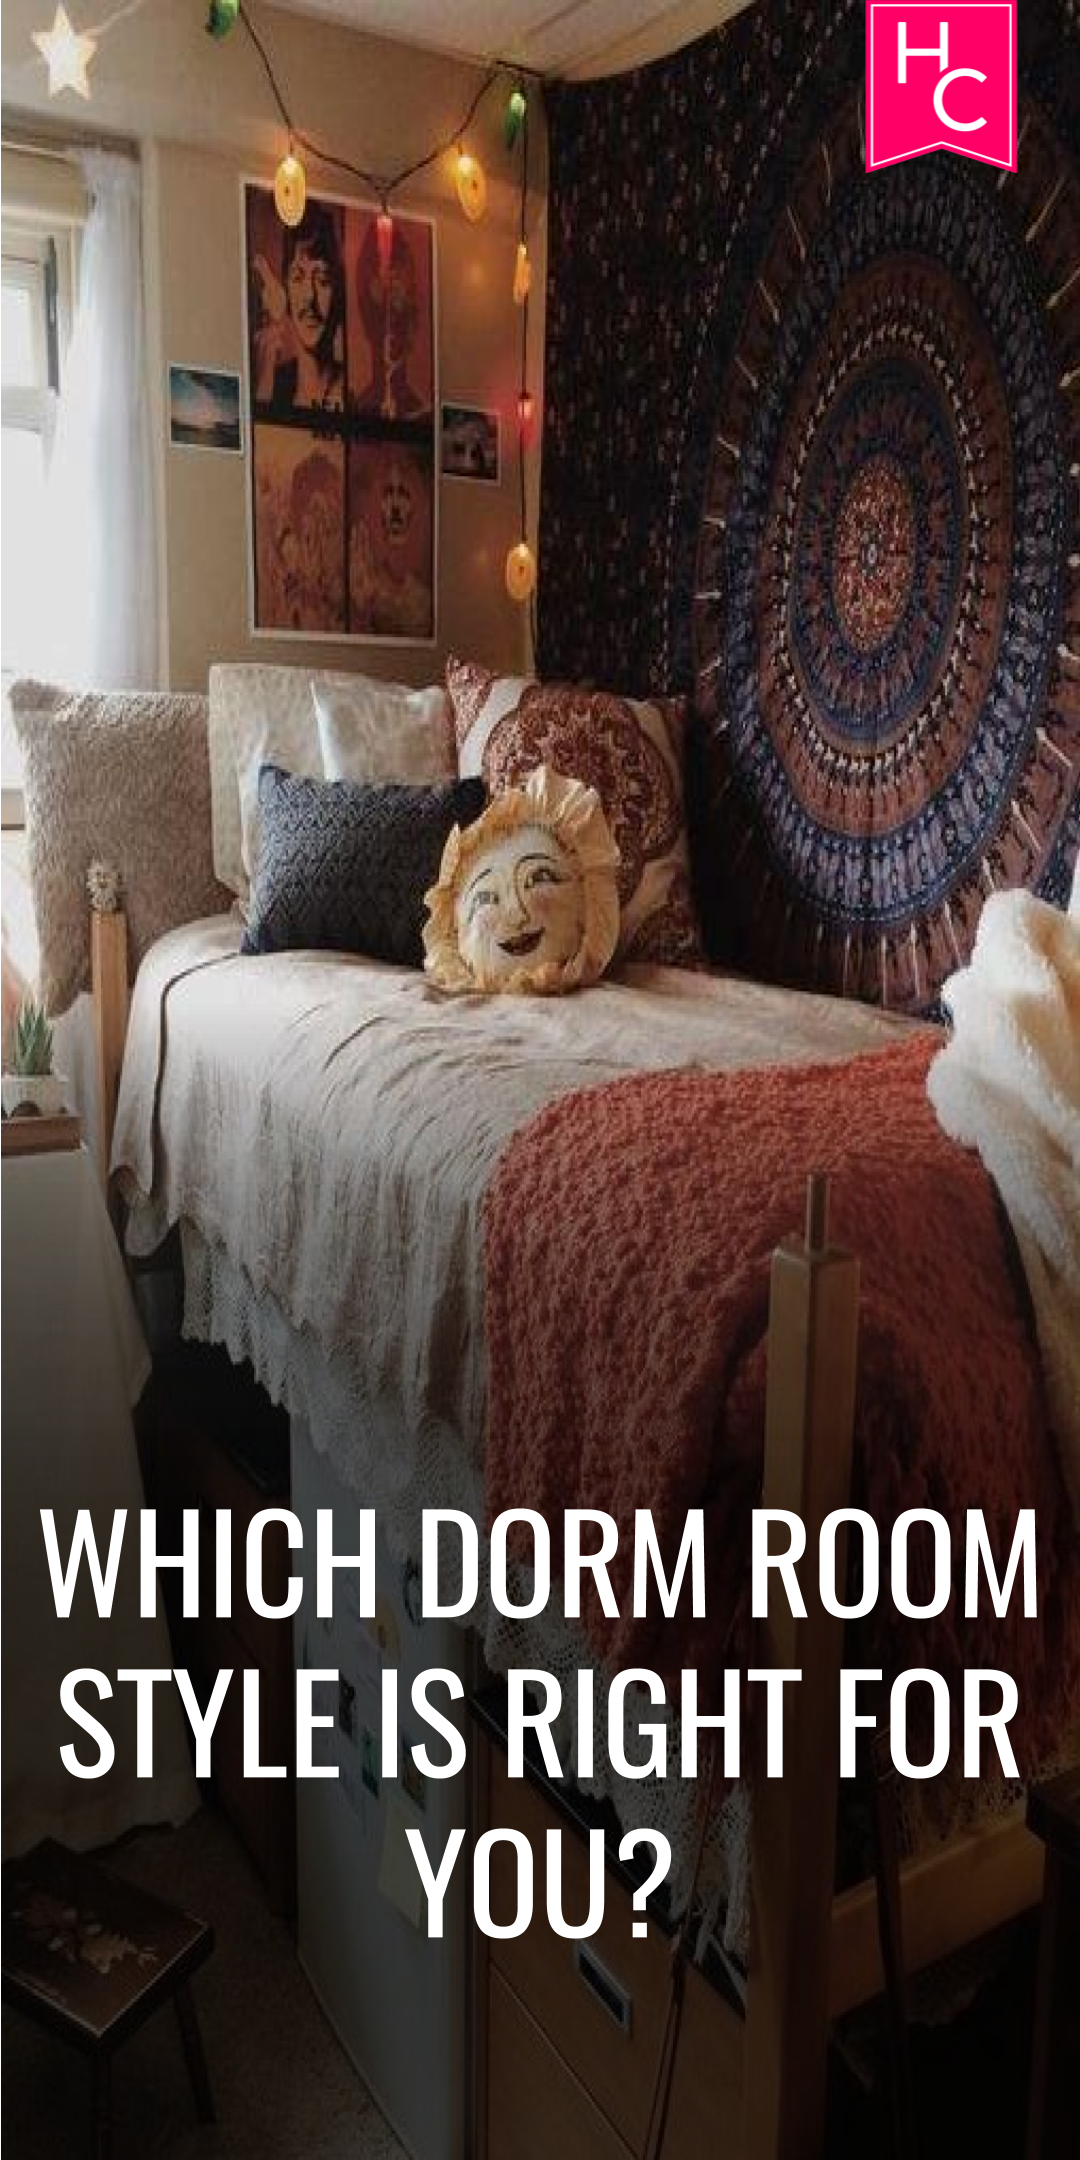 Quiz: Which Dorm Room Style is Right for You? | Dorm room styles ...